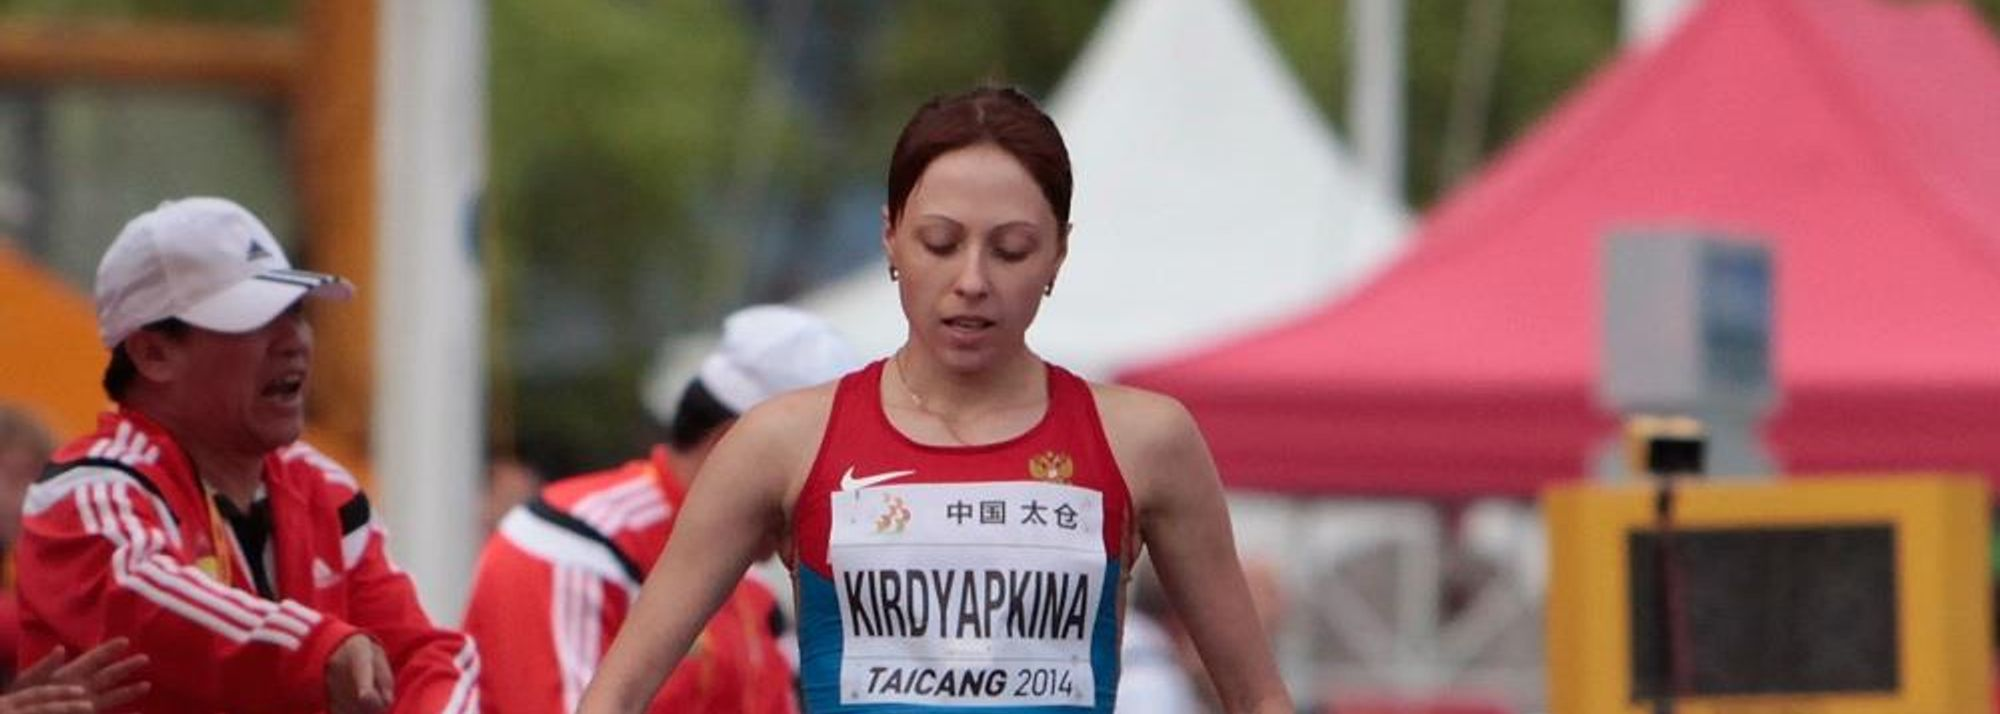 After a bronze and silver medal at the past two IAAF World Championships, Anisya Kirdyapkina finally climbed to the top of the podium thanks to a triumph at the 2014 IAAF World Race Walking Cup, producing a stirring effort over the last third of the race to emerge a convincing winner on Saturday (3).